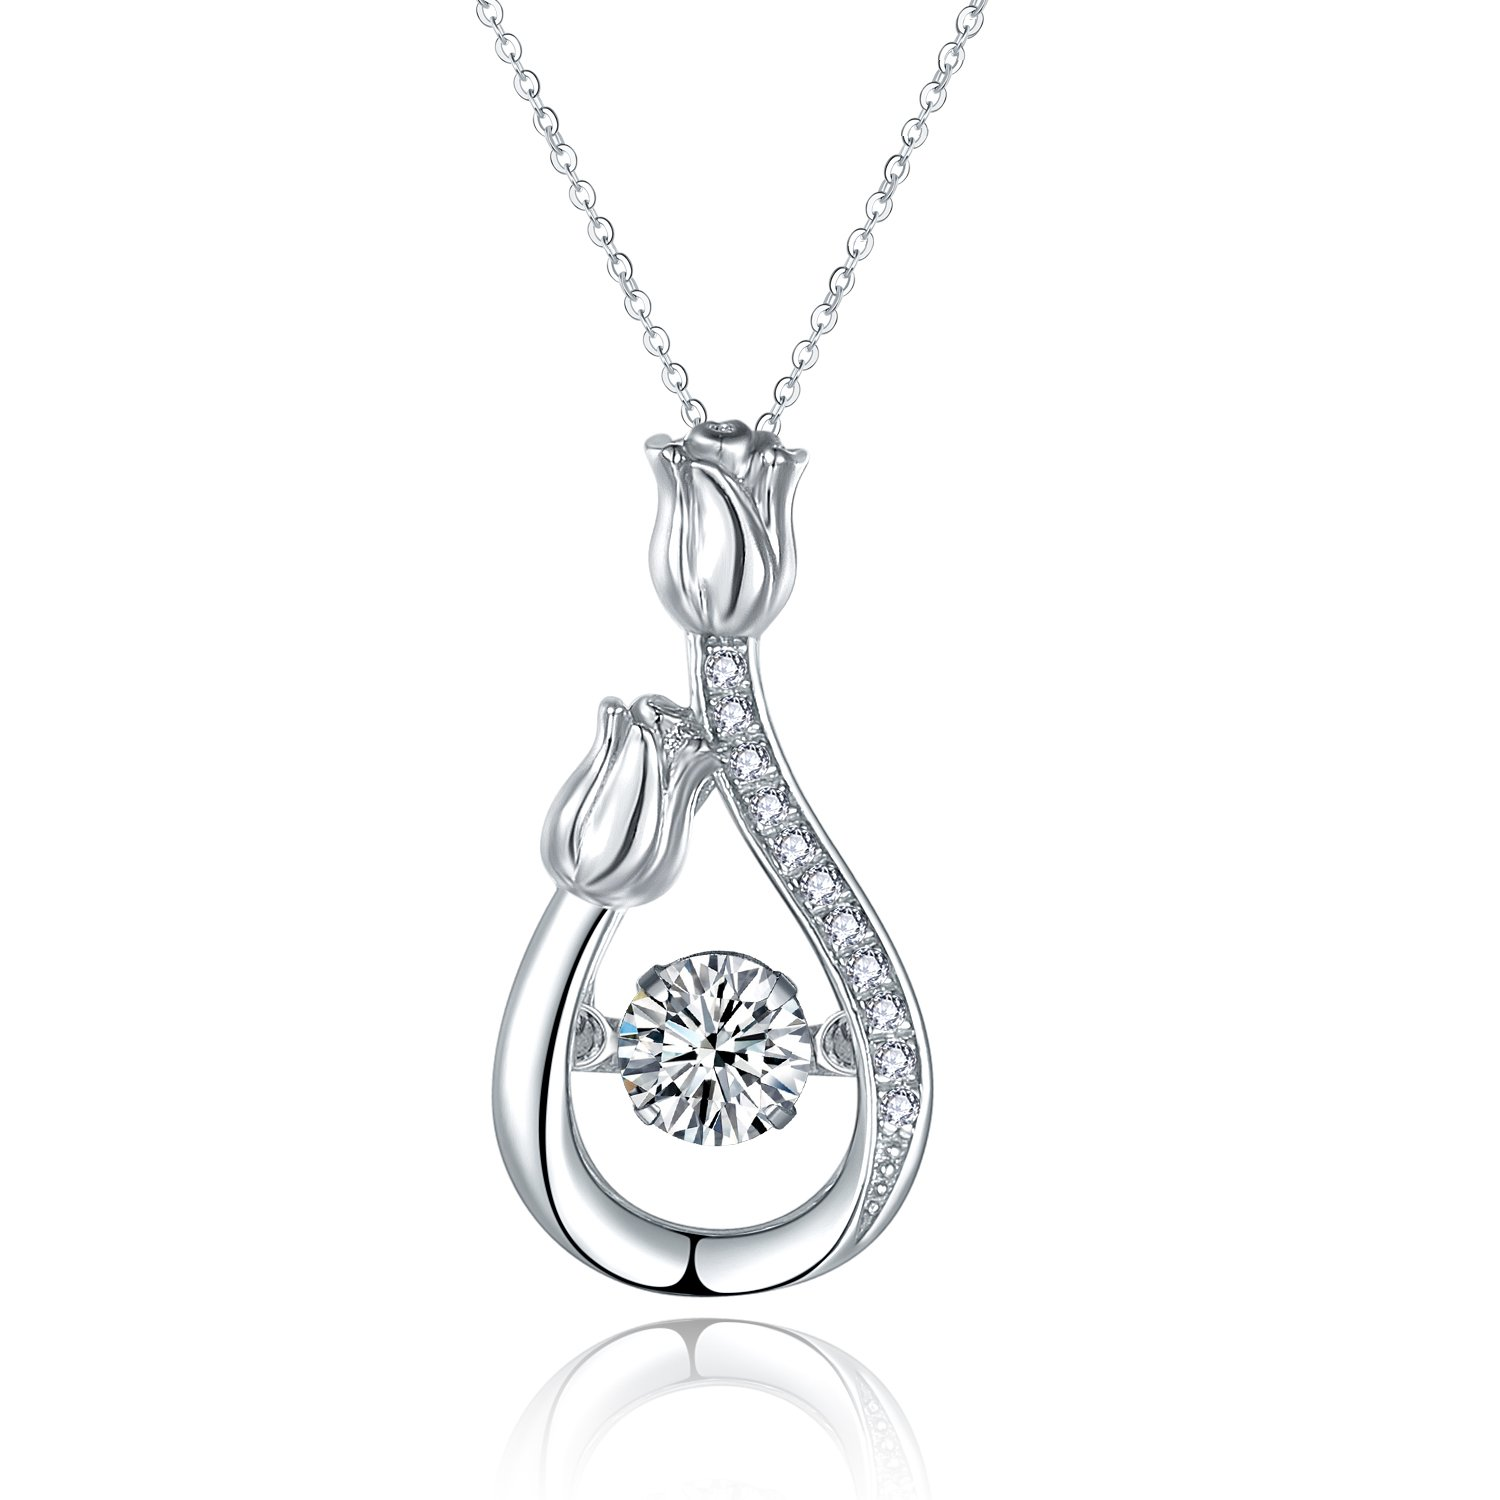 jiamiaoi 925 Sterling Silver Necklace for Women with Dancing Zircon Romantic Rose Pendant Dancing Necklace Jewelry Great Gift Idea for Women